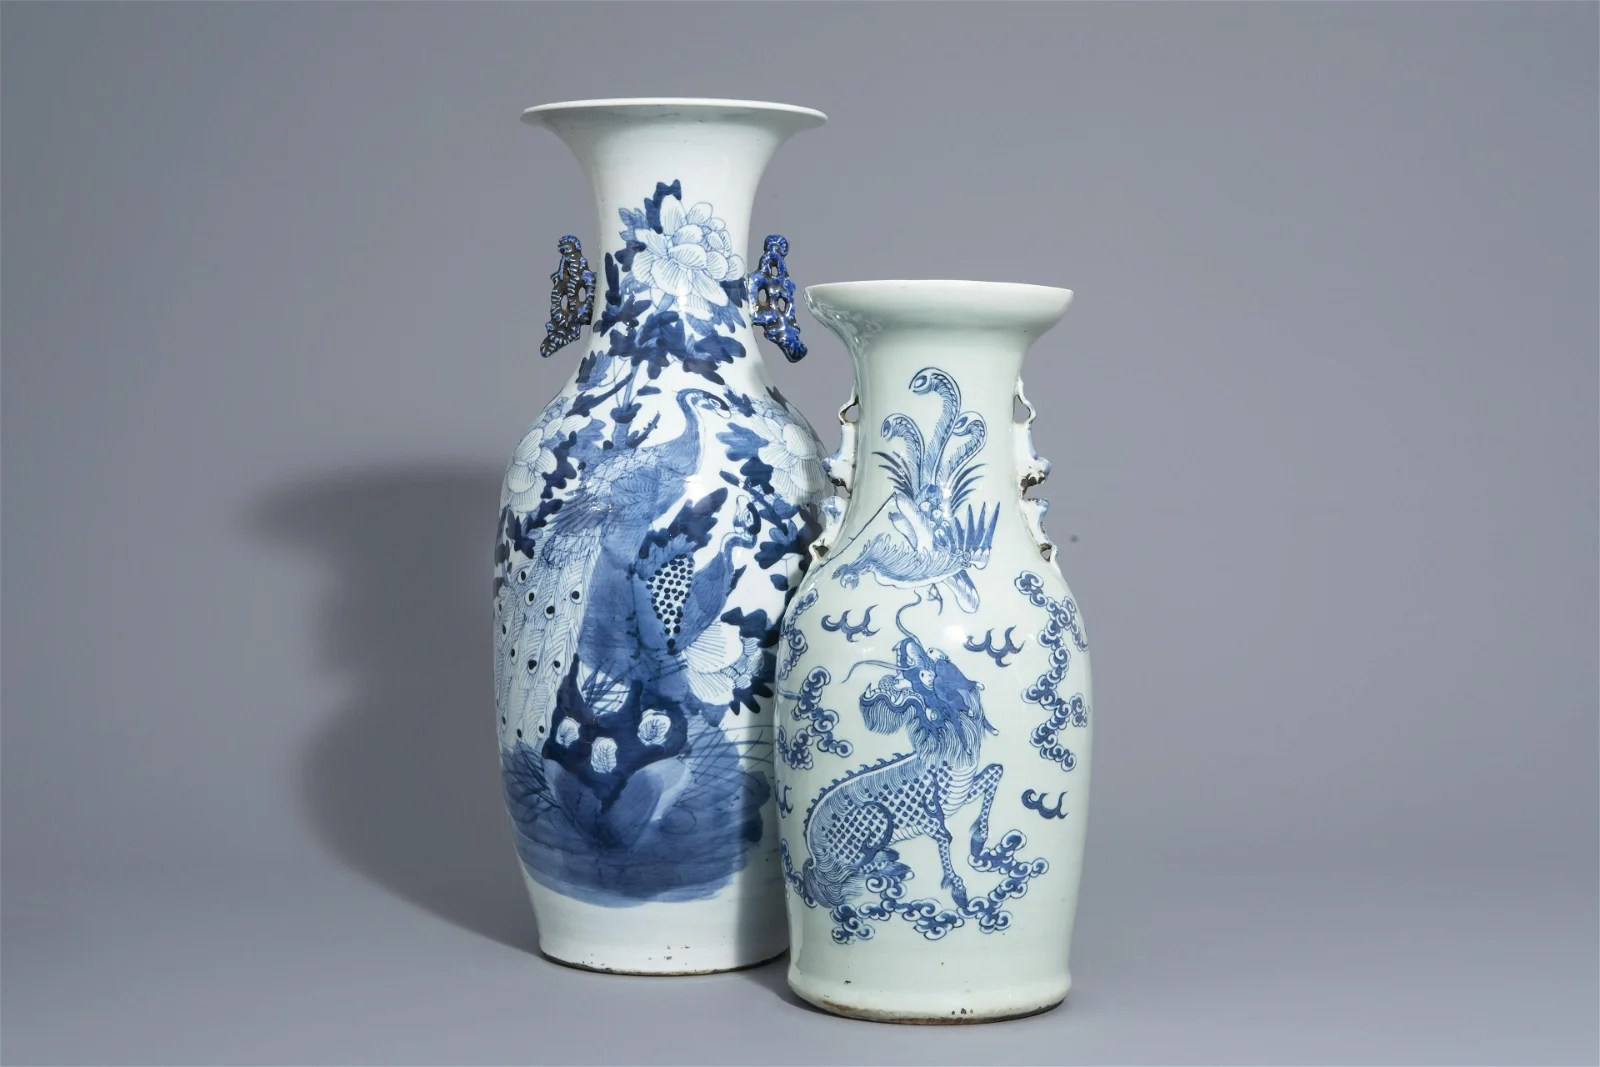 Two Chinese blue and white vases with mythological